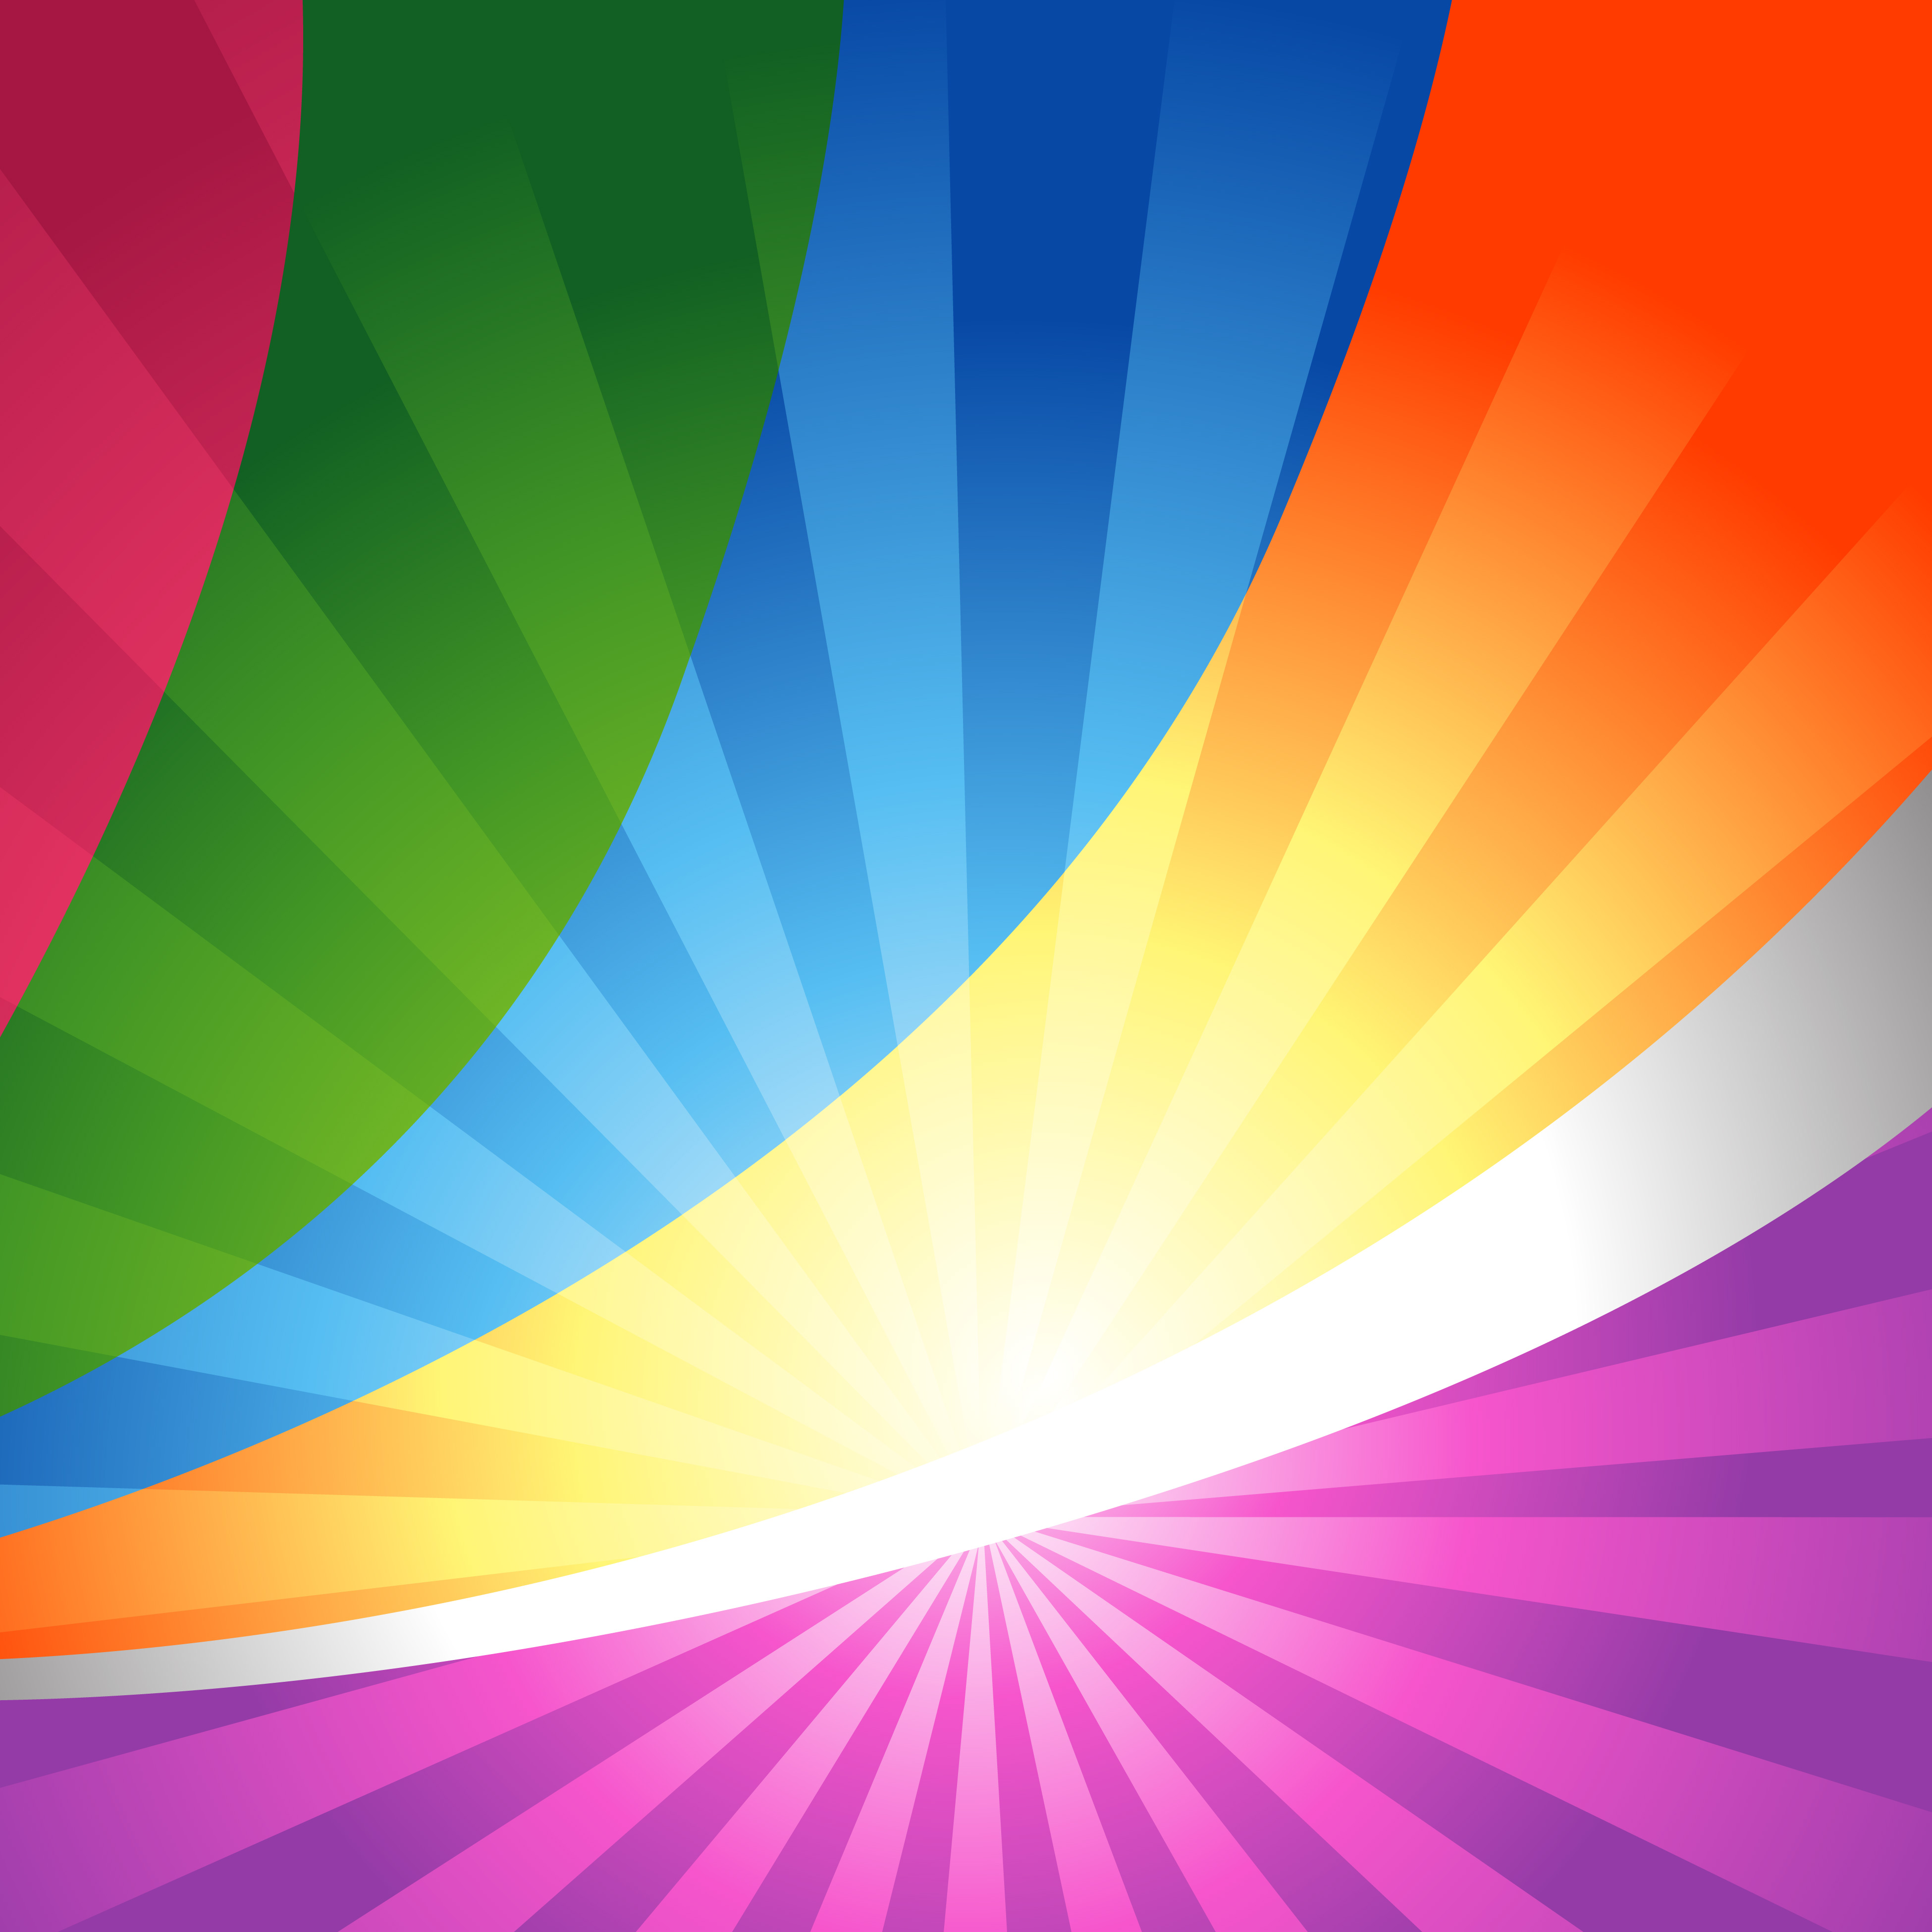 vector colorful background 221051 - Download Free Vectors ...